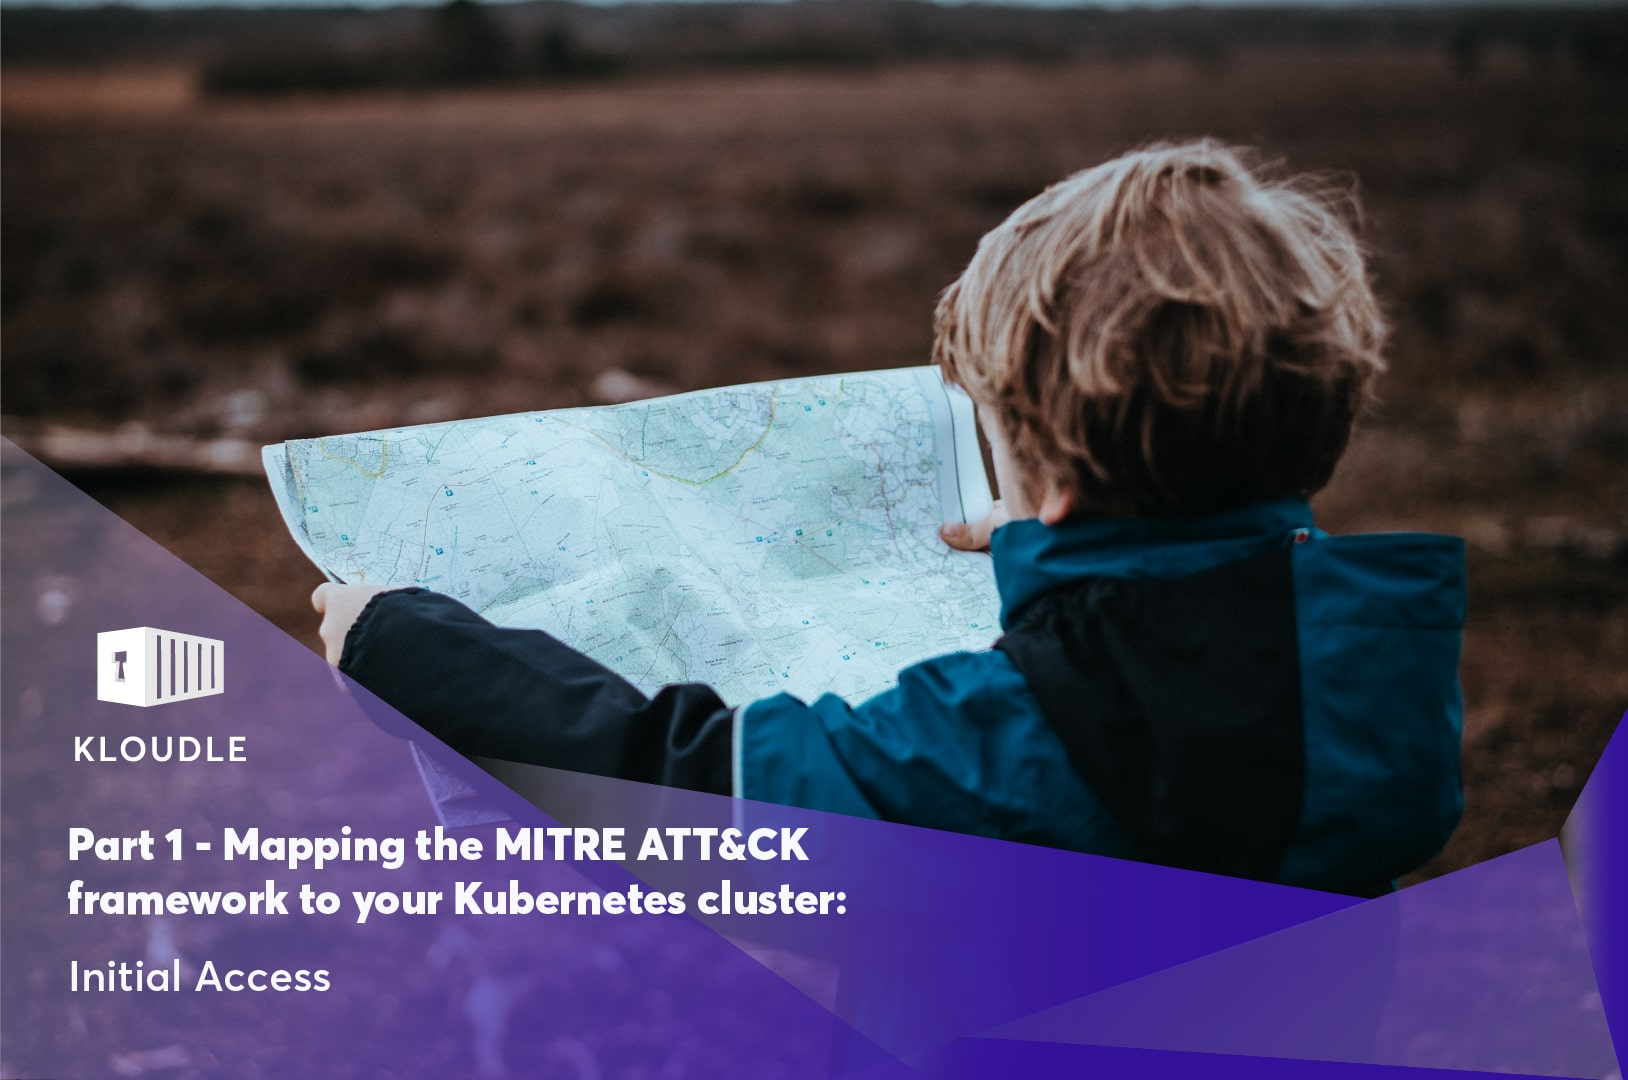 Part 1: Mapping the MITRE ATT&CK framework to your Kubernetes cluster: Initial Access